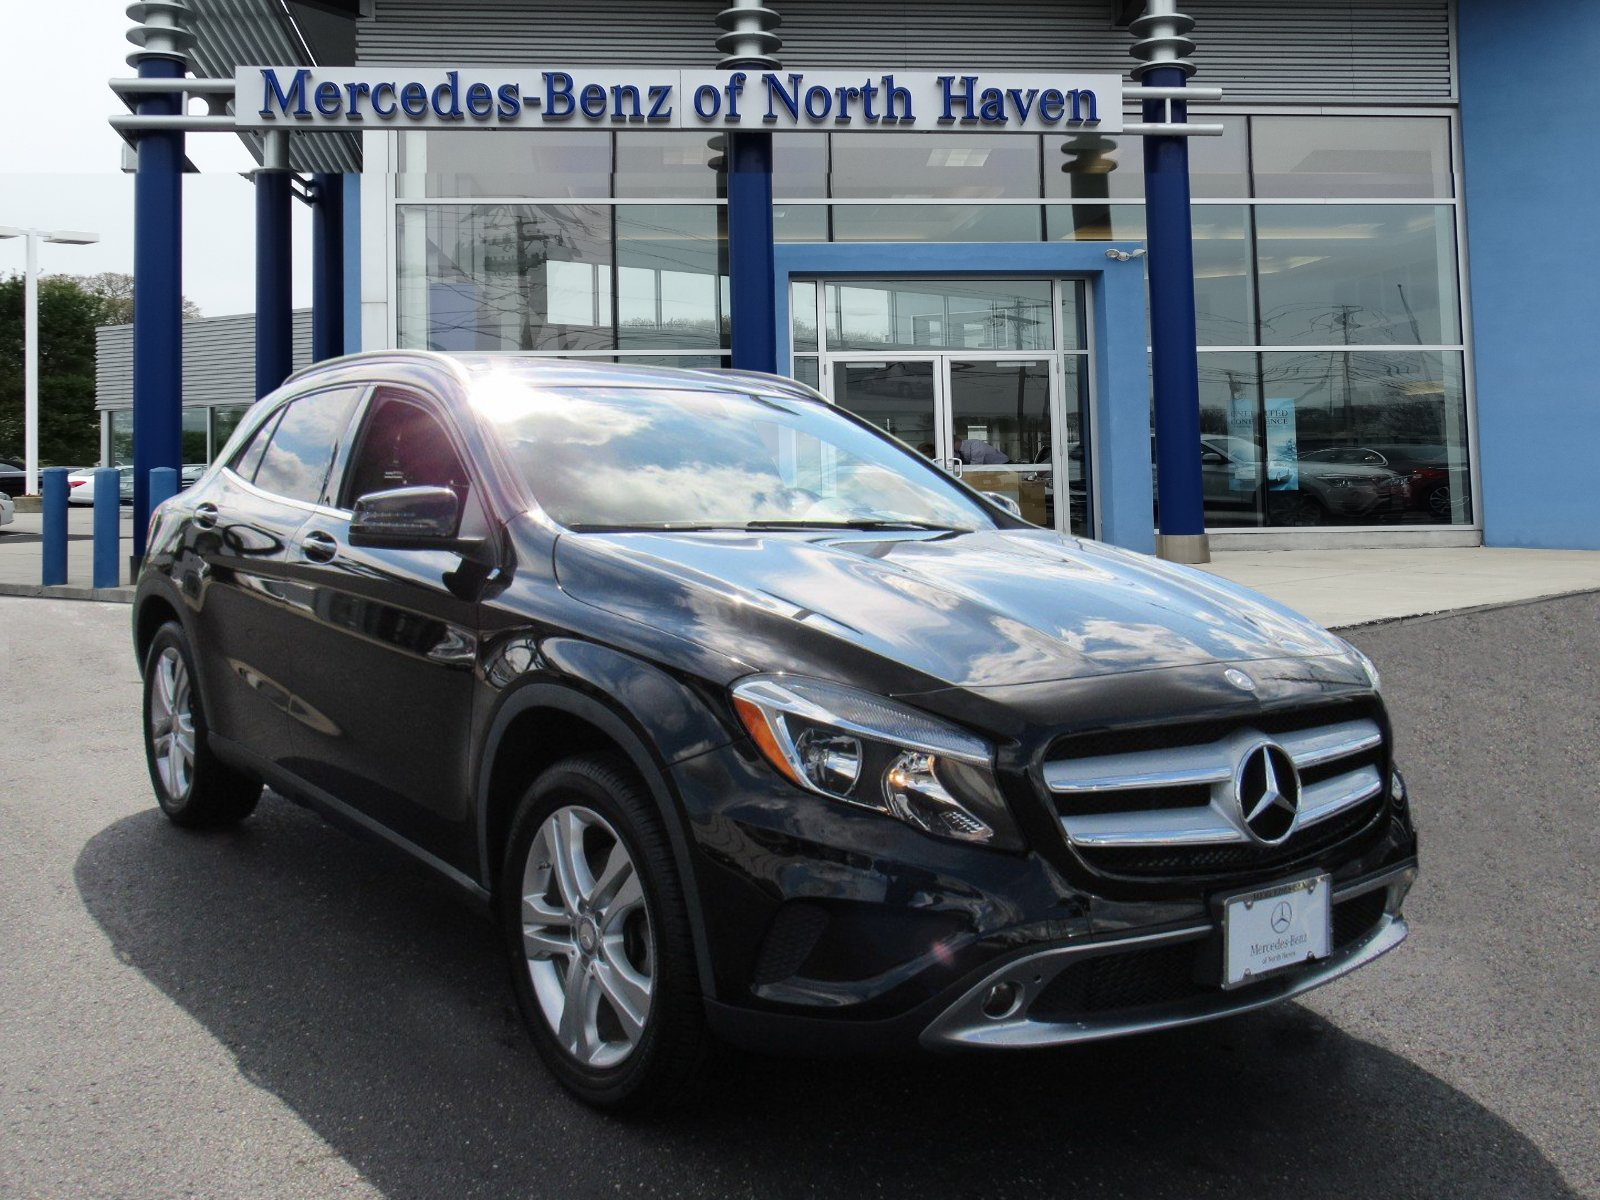 Certified Pre Owned 2015 Mercedes Benz GLA GLA 250 SUV in North